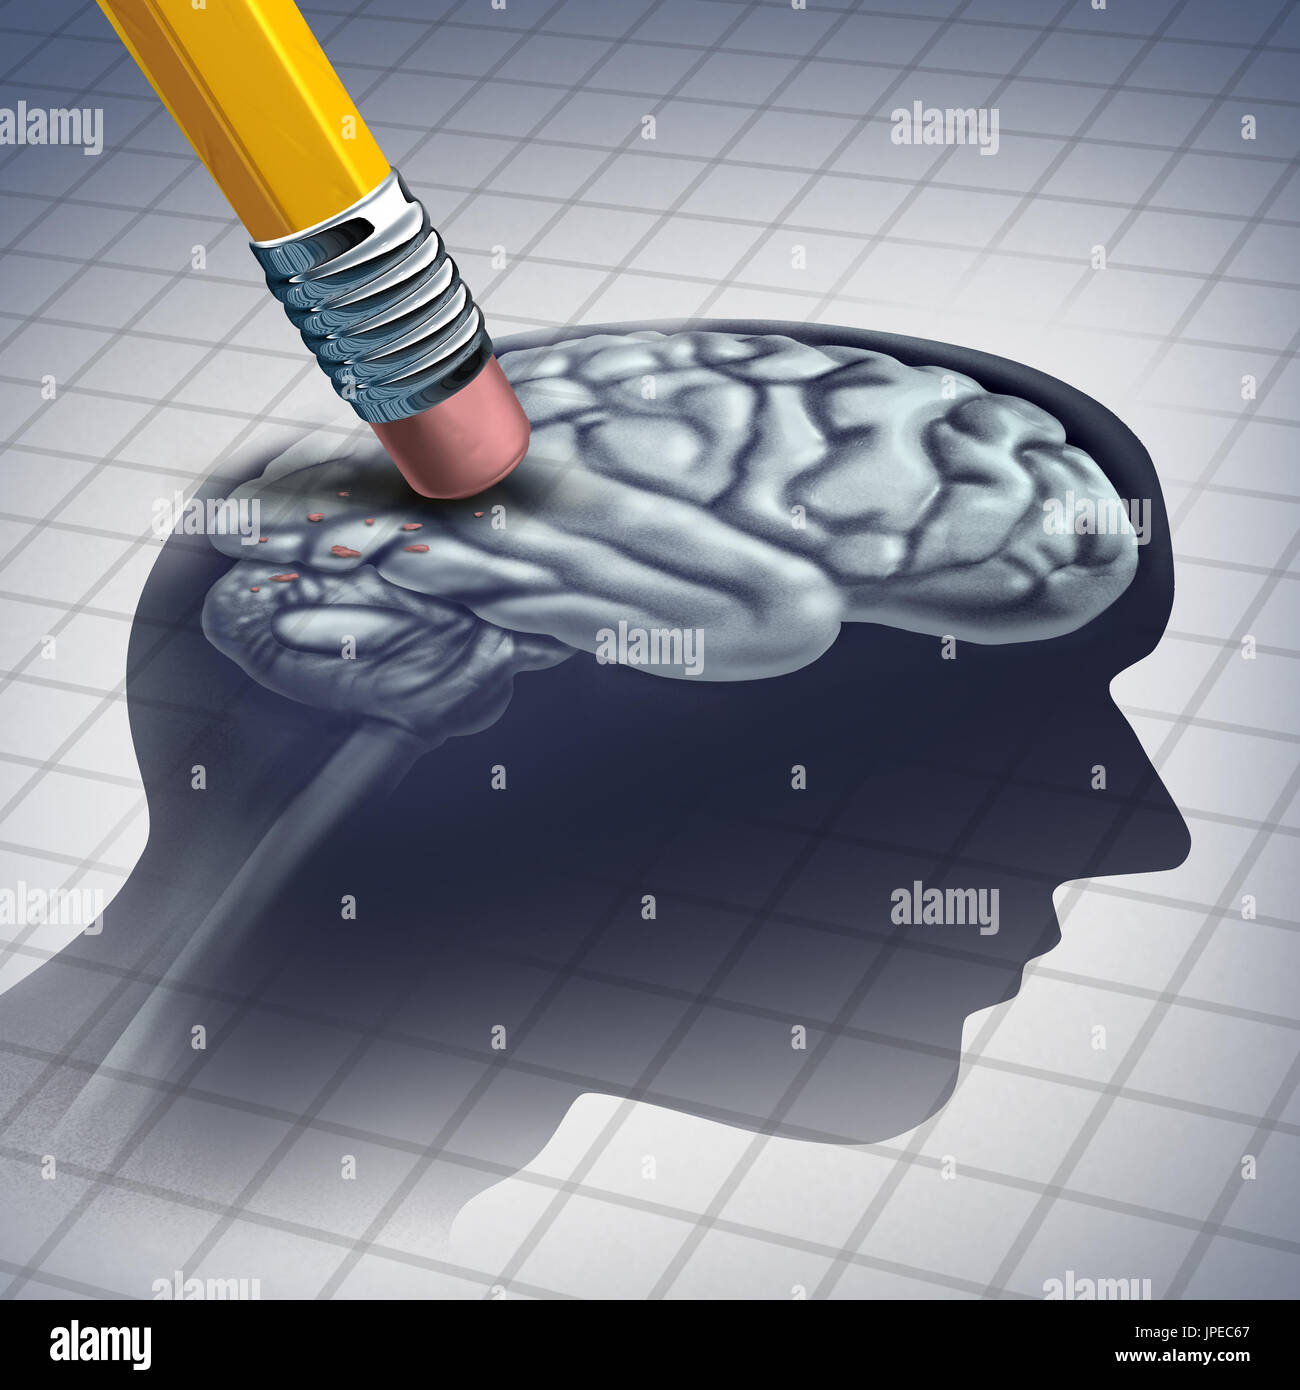 Dementia illness and disease as a loss of brain function and memories as alzheimers as a medical health care icon of neurology and mental problems. - Stock Image